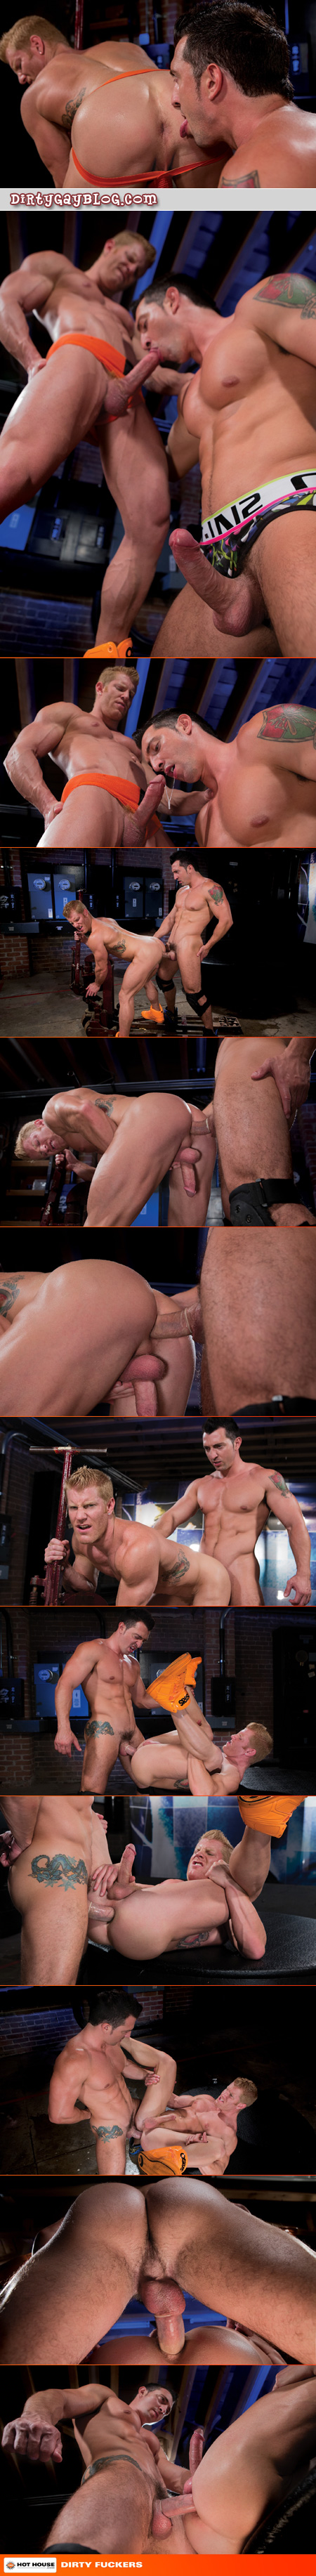 Muscle man sucking and fucking a blonde bodybuilder in his jockstrap.